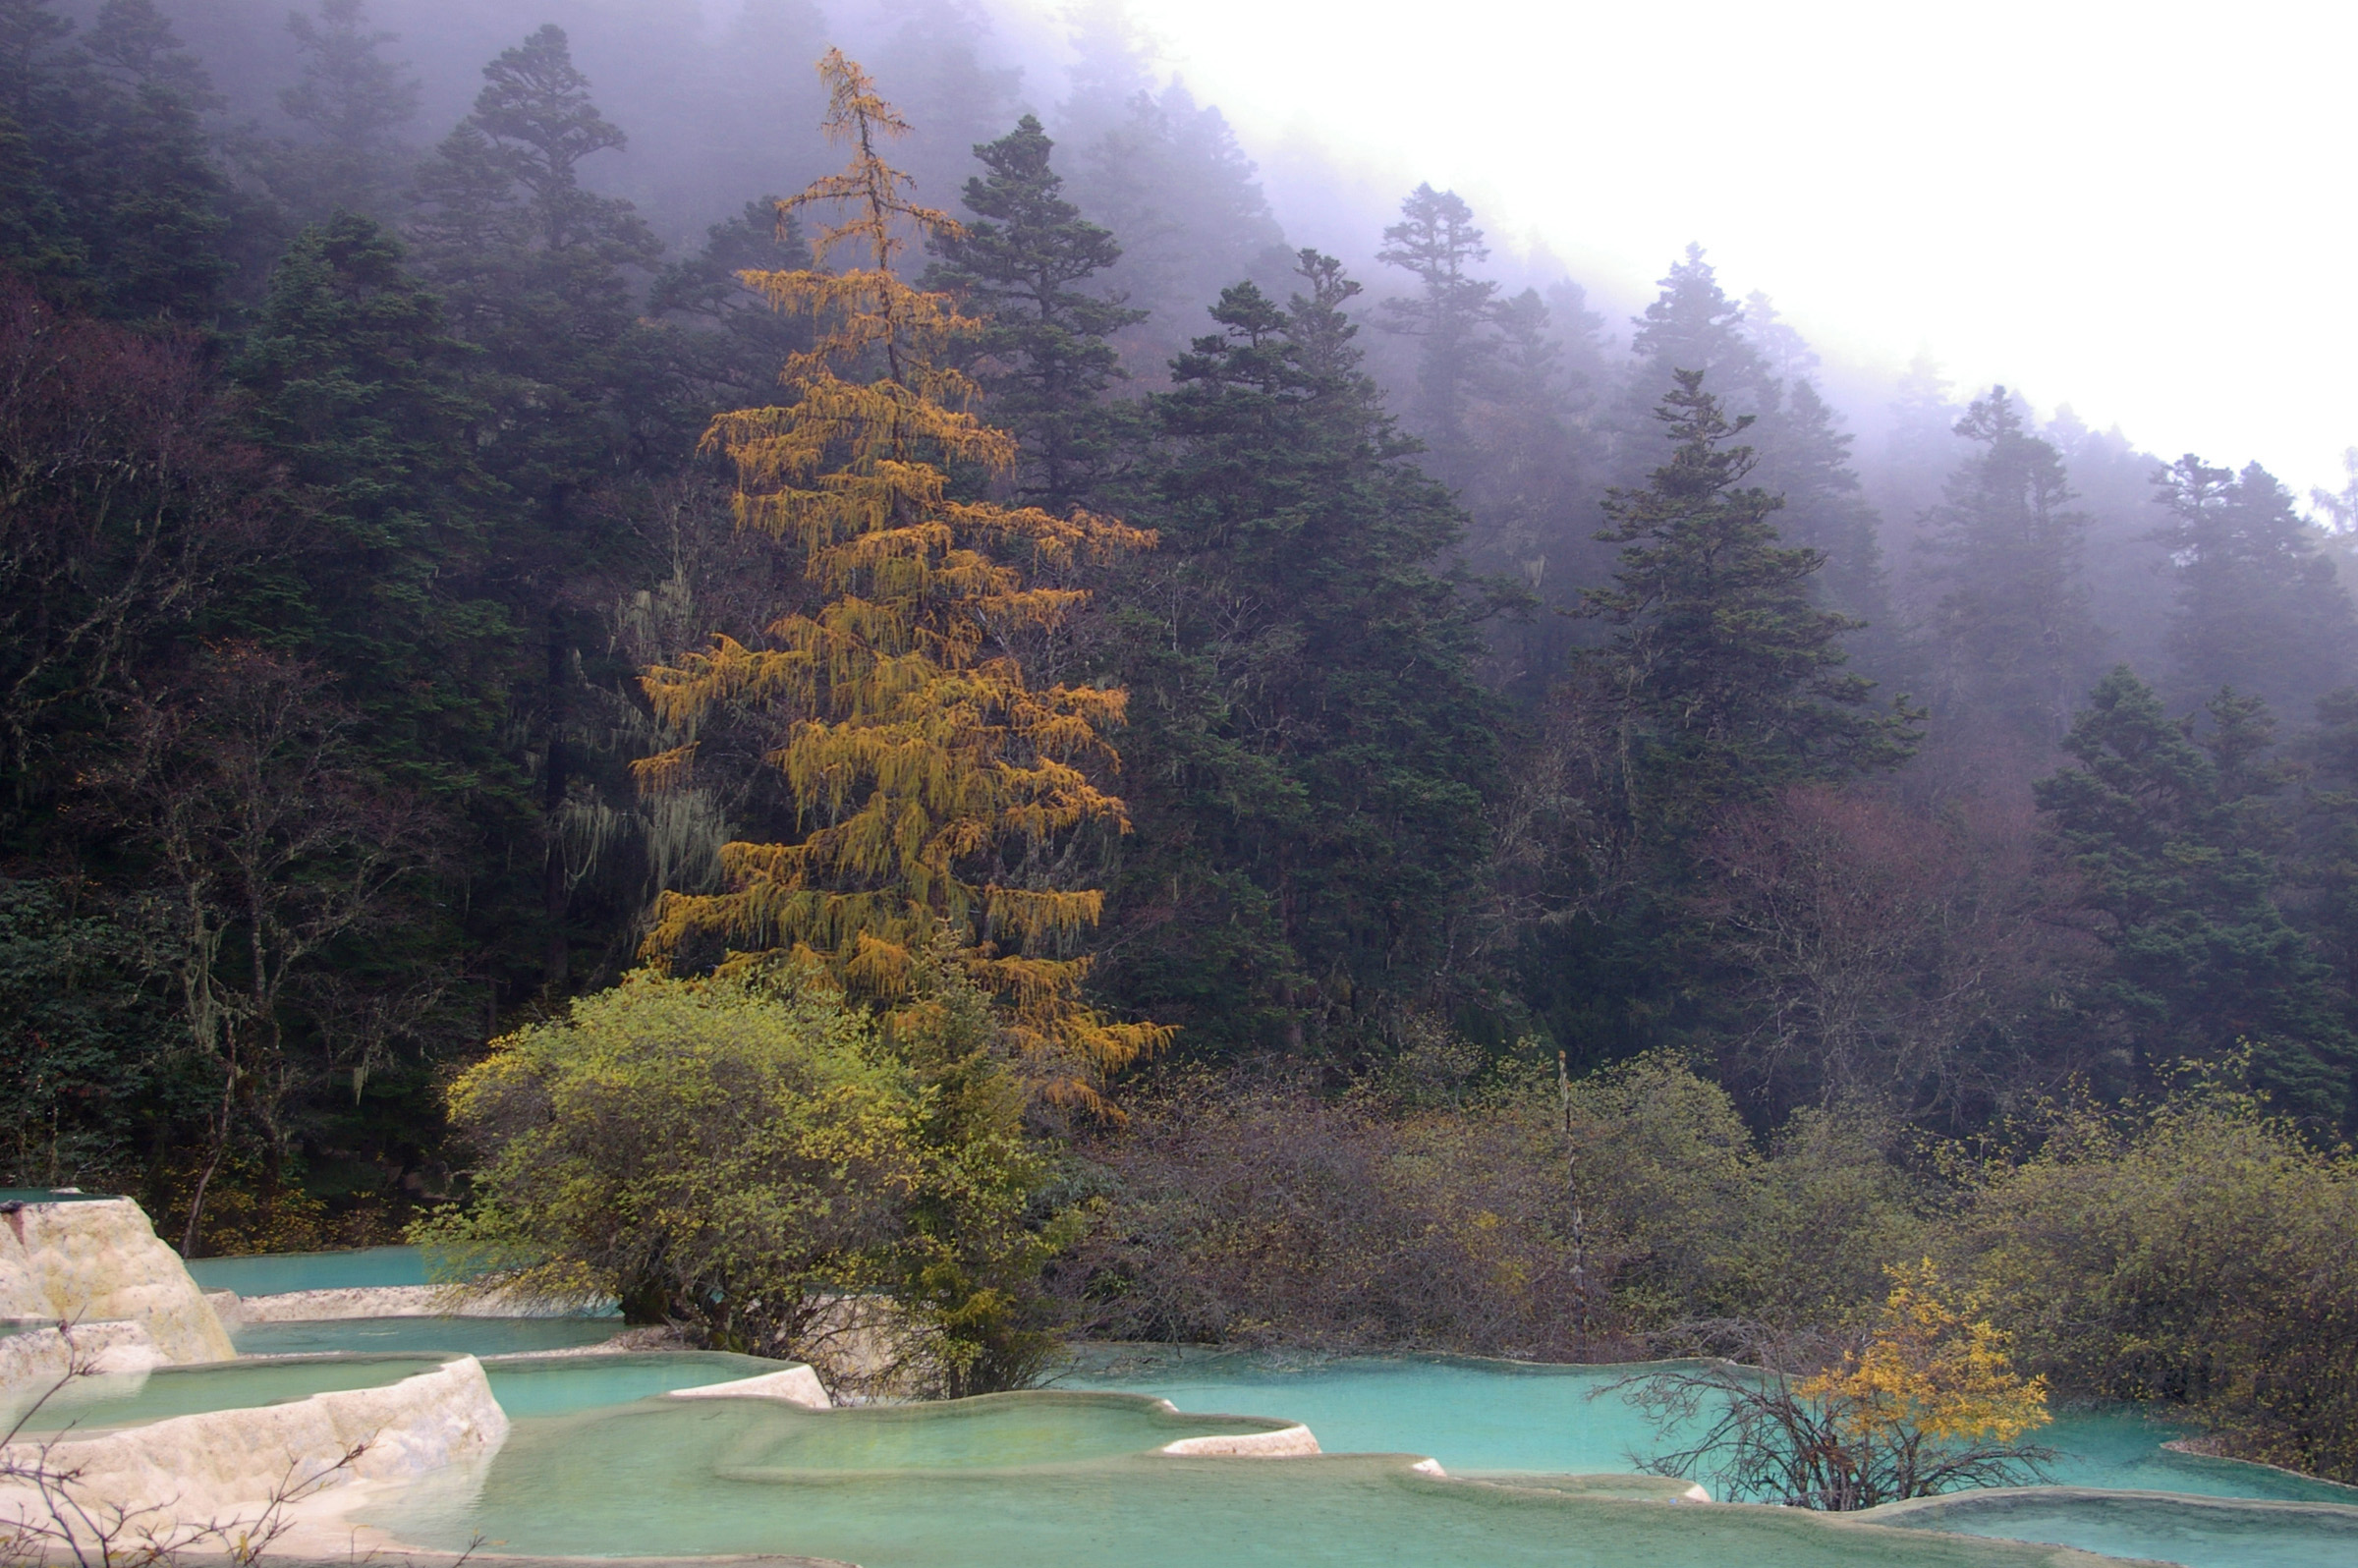 Beautiful Blue Crystallized China Thermal Pools in Unique Shapes Surrounded by Green Plants and Trees.